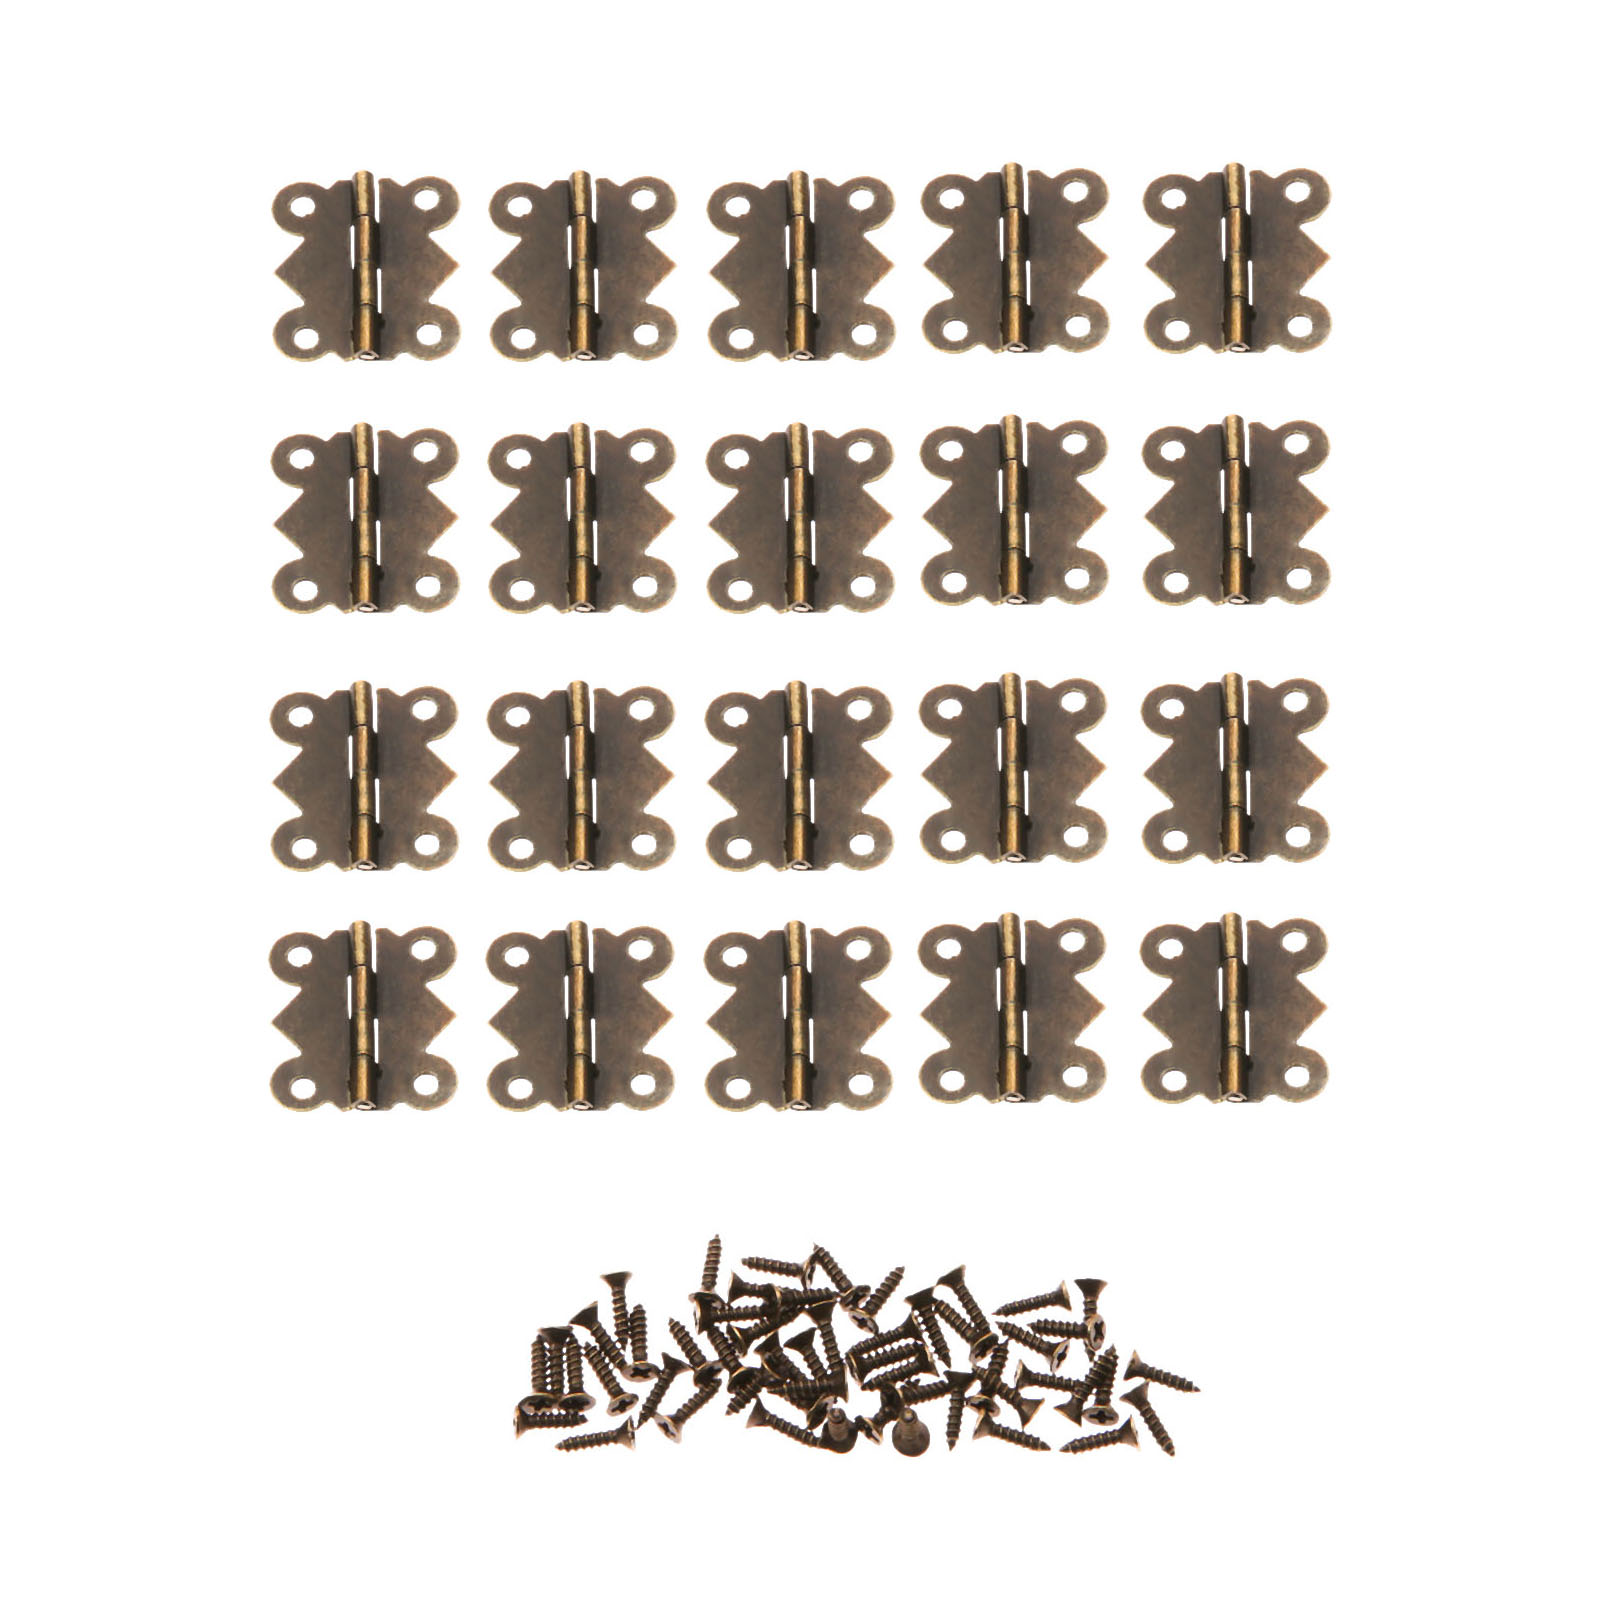 DRELD 20Pcs 20*25mm Mini Butterfly Door Hinge Antique Bronze Cabinet Drawer Jewellery Box Decorative Hinges Furniture Hardware